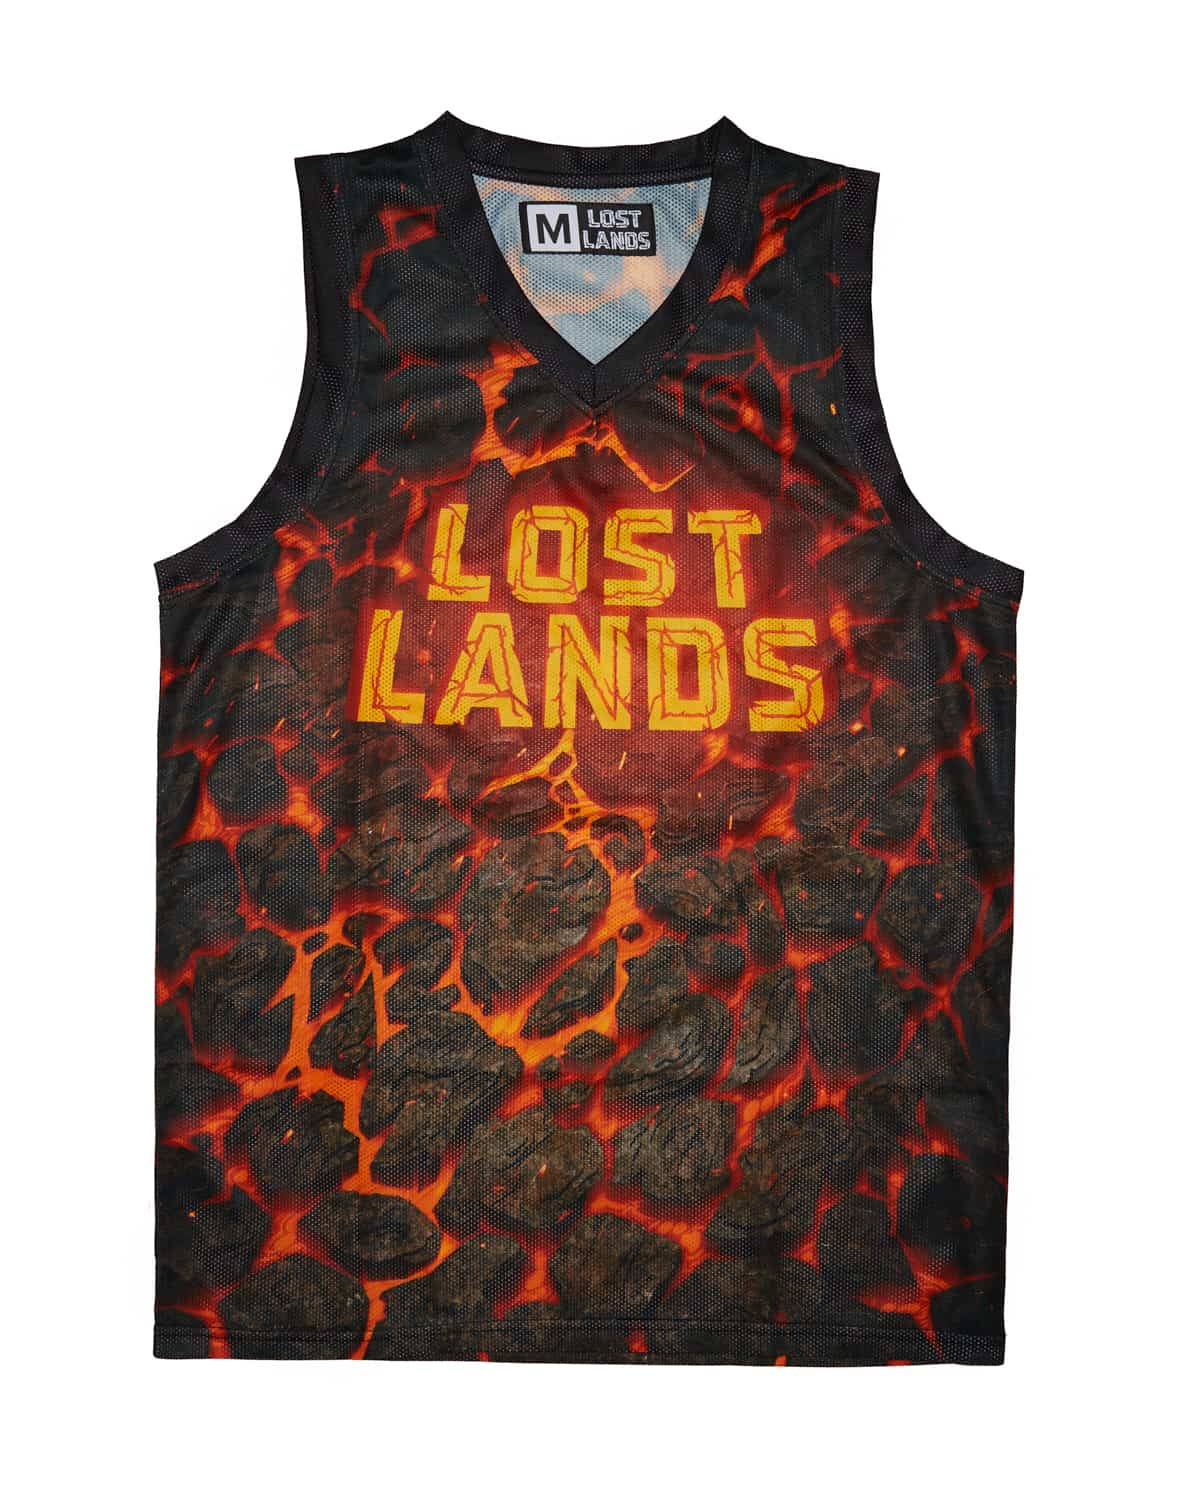 7c220a448e56 Lost Lands 2018  Magma  Basketball Jersey - Black Red